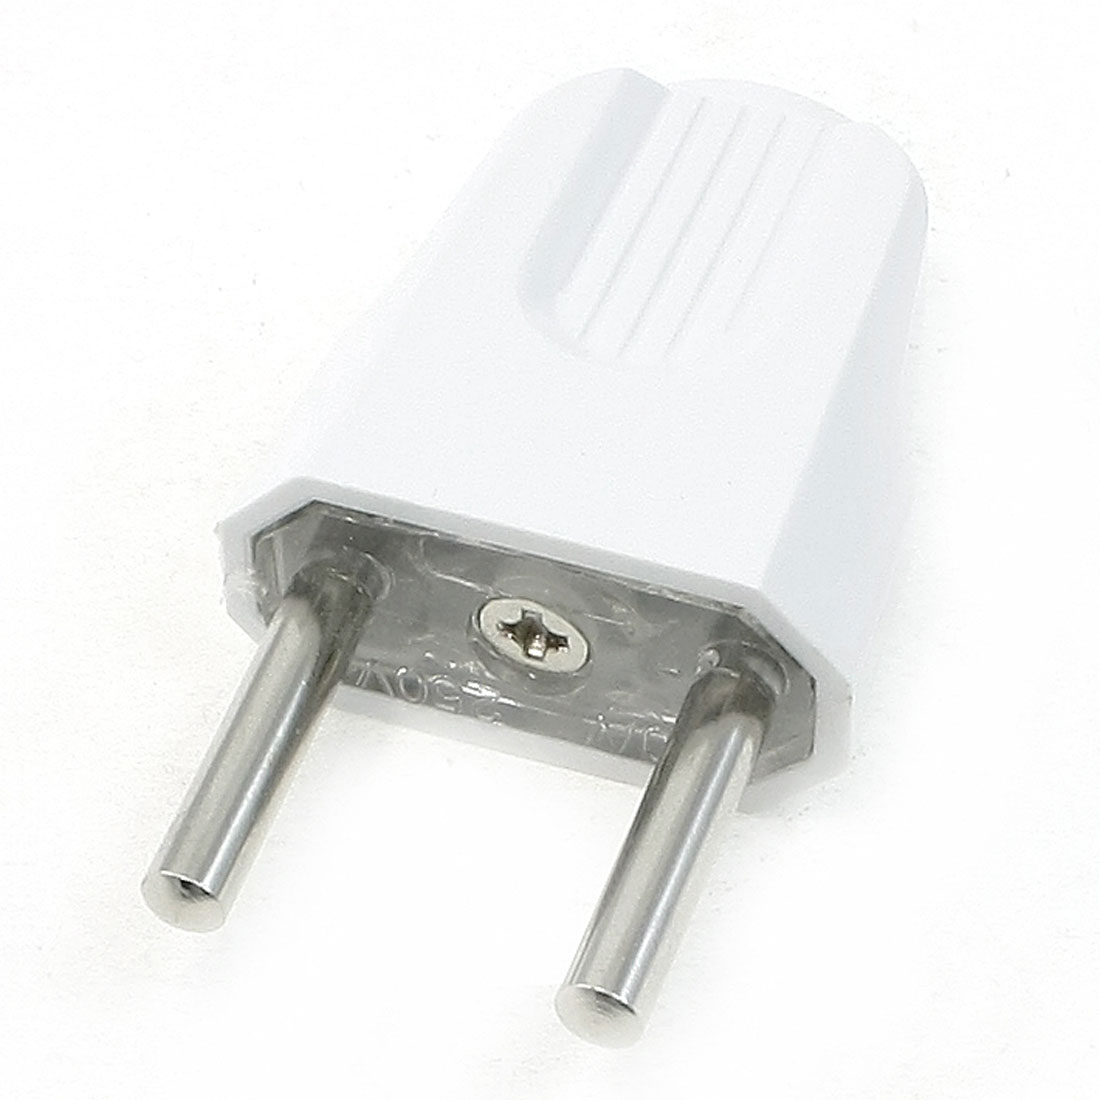 AC 250V 10A White Plastic Shell EU 2 Round Pin Power Plug Connector